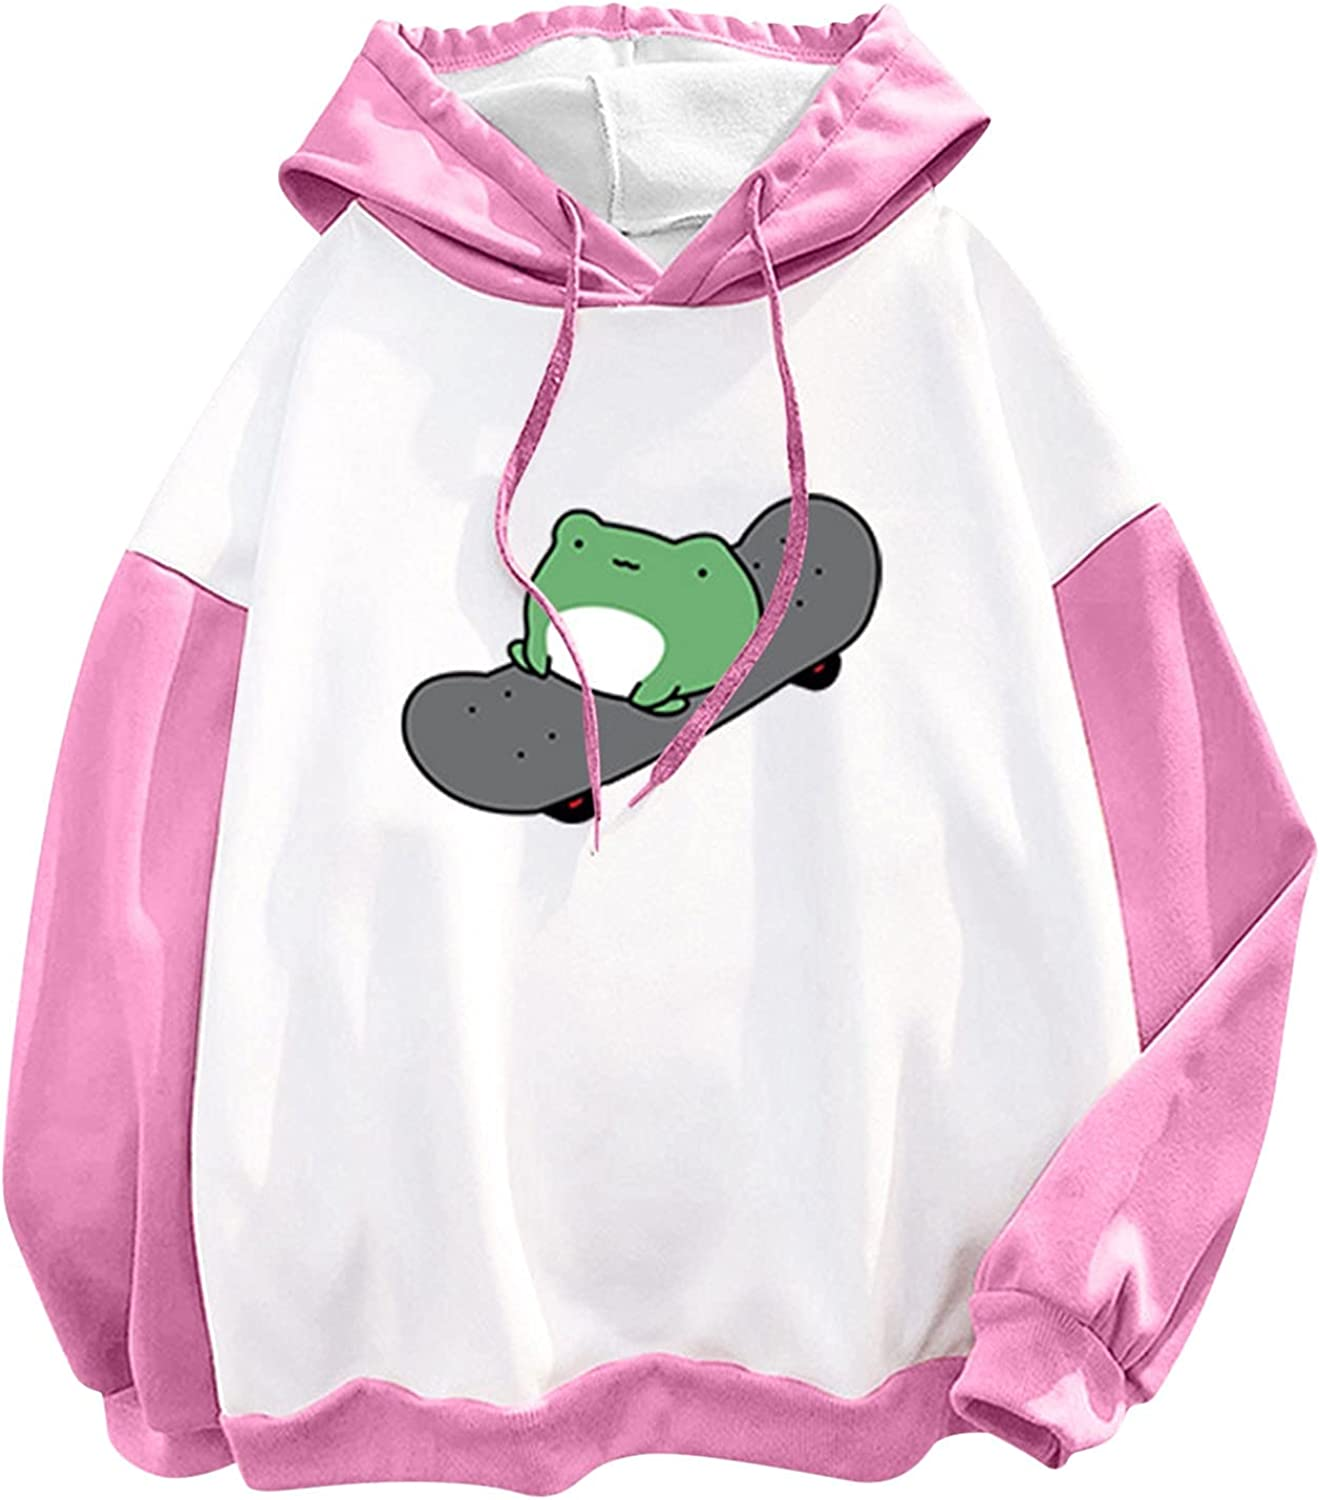 AODONG Hoodies for Women Cute Frog Graphic Loose Long Sleeve Casual Sweatshirts Pullover Tops Blouses